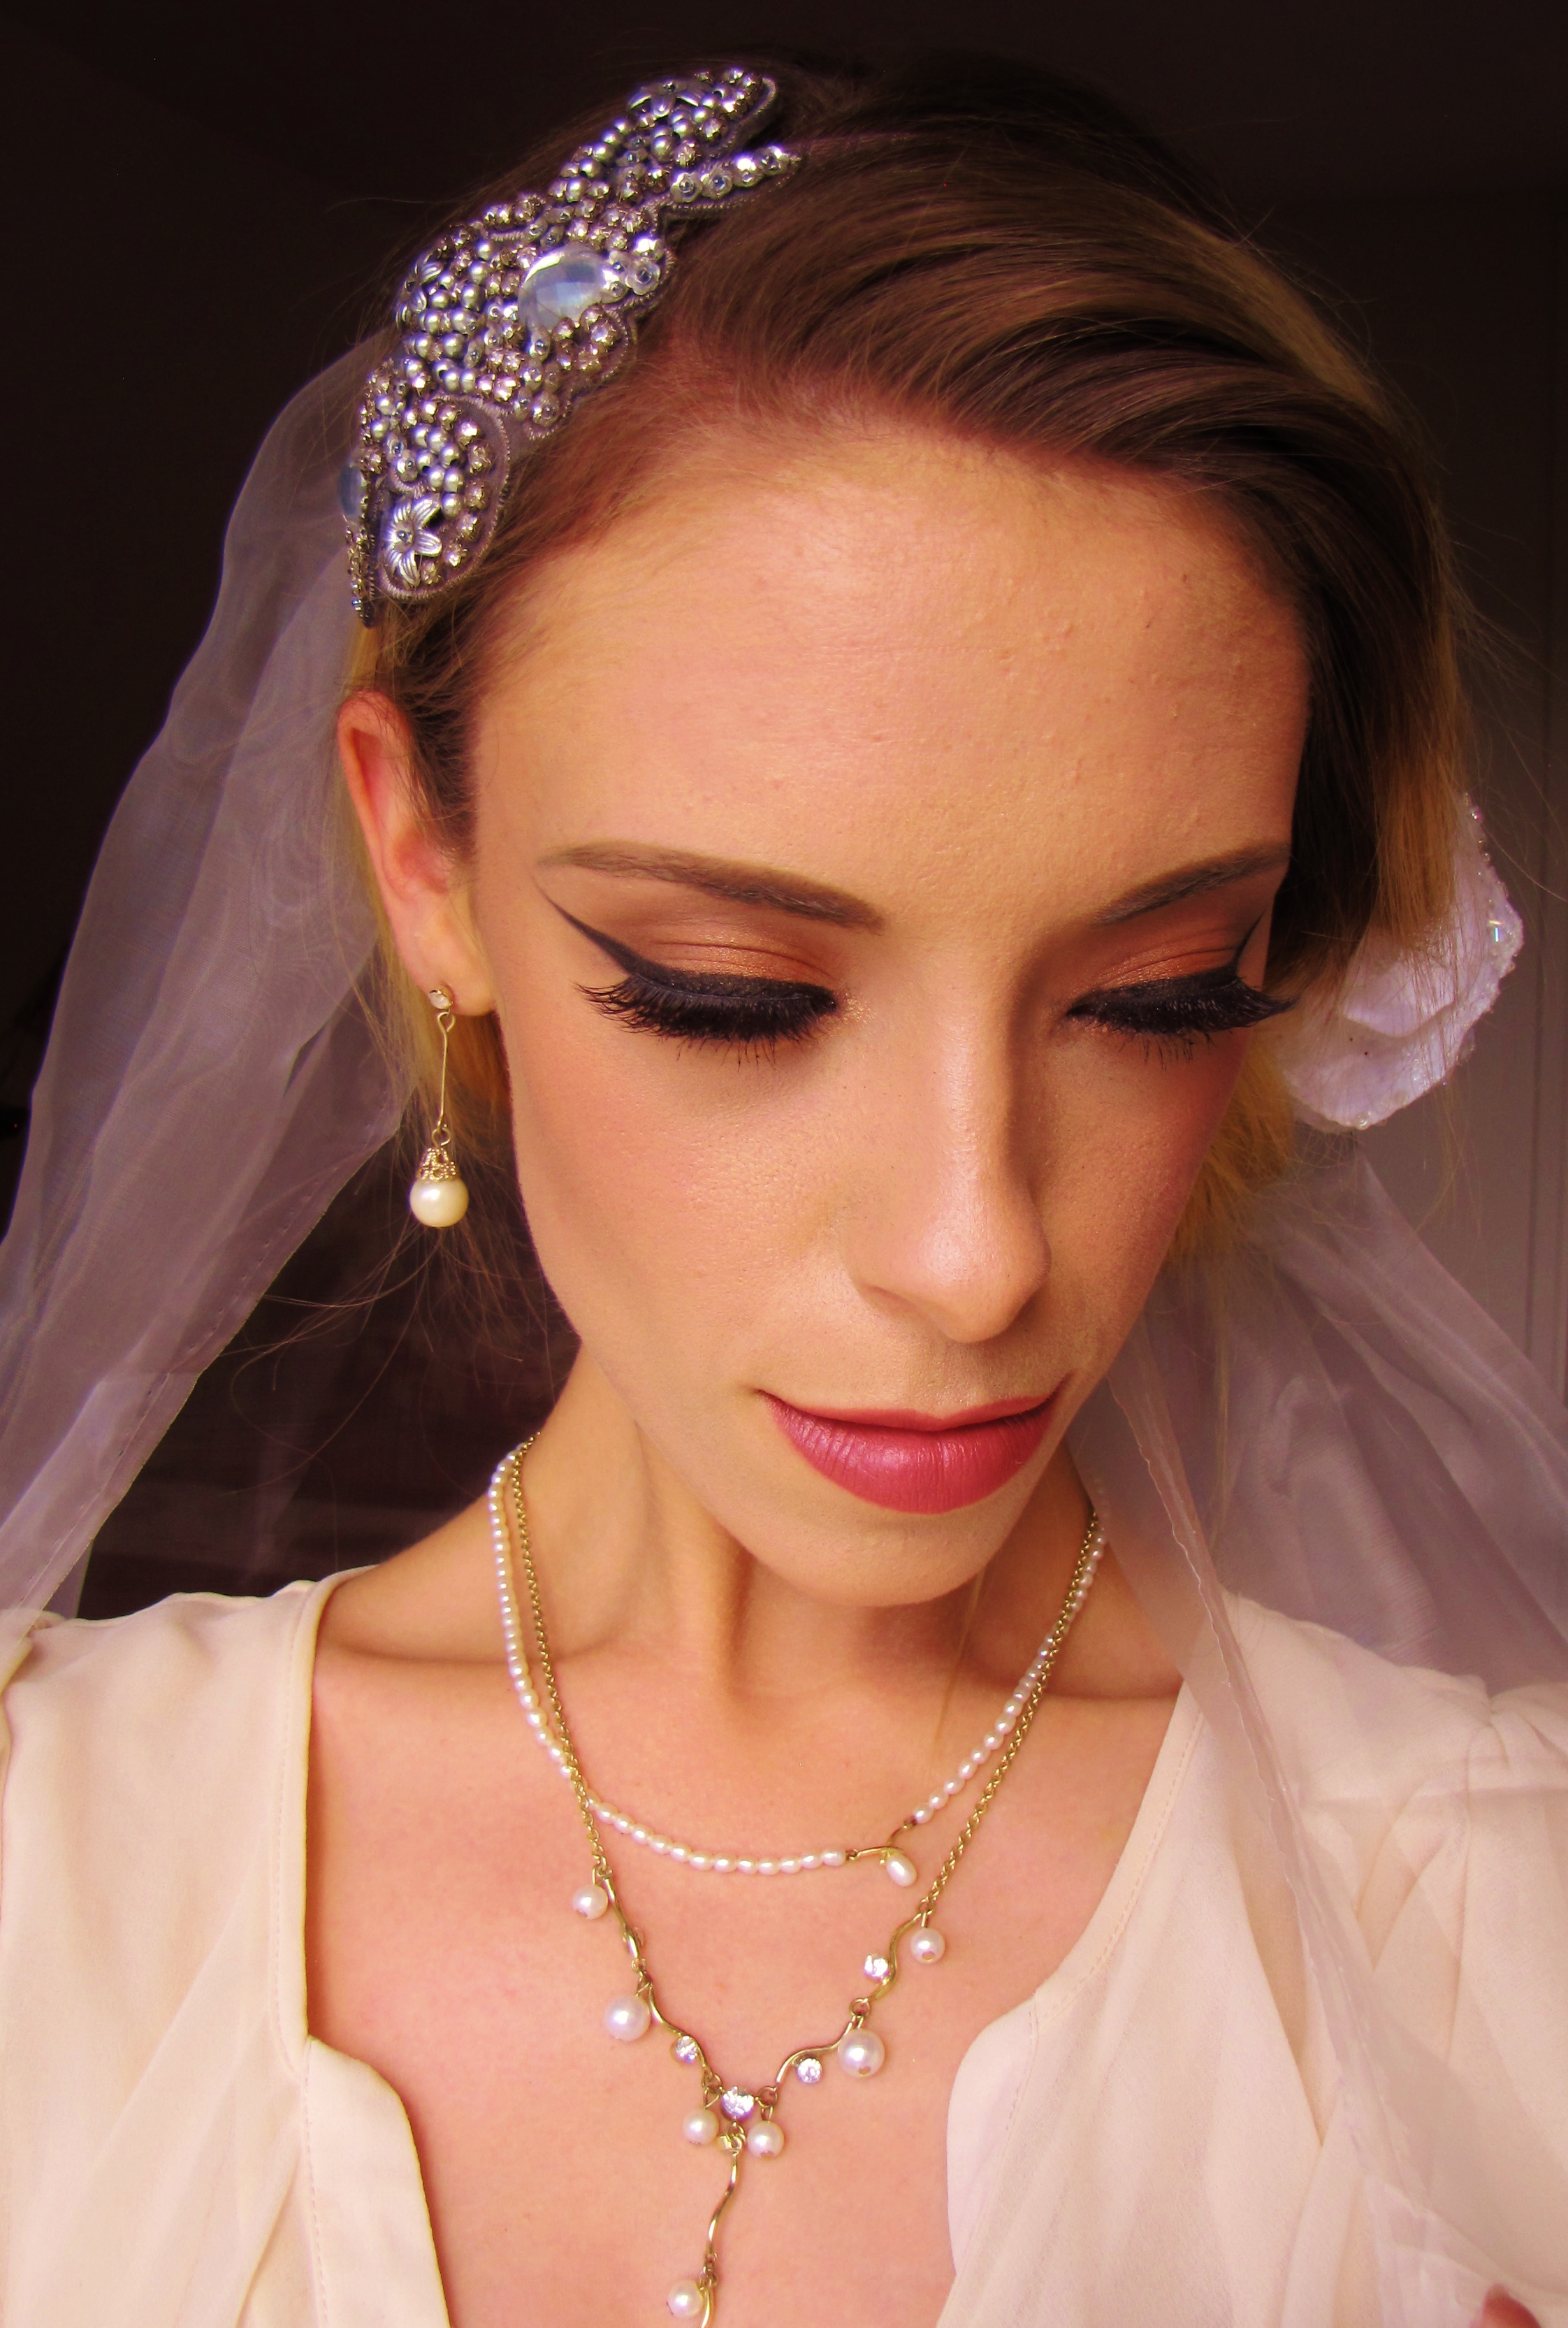 Doing Your Own Wedding Makeup Tips : Make-Up Artists Advice: Doing Your Own Wedding Day Make ...